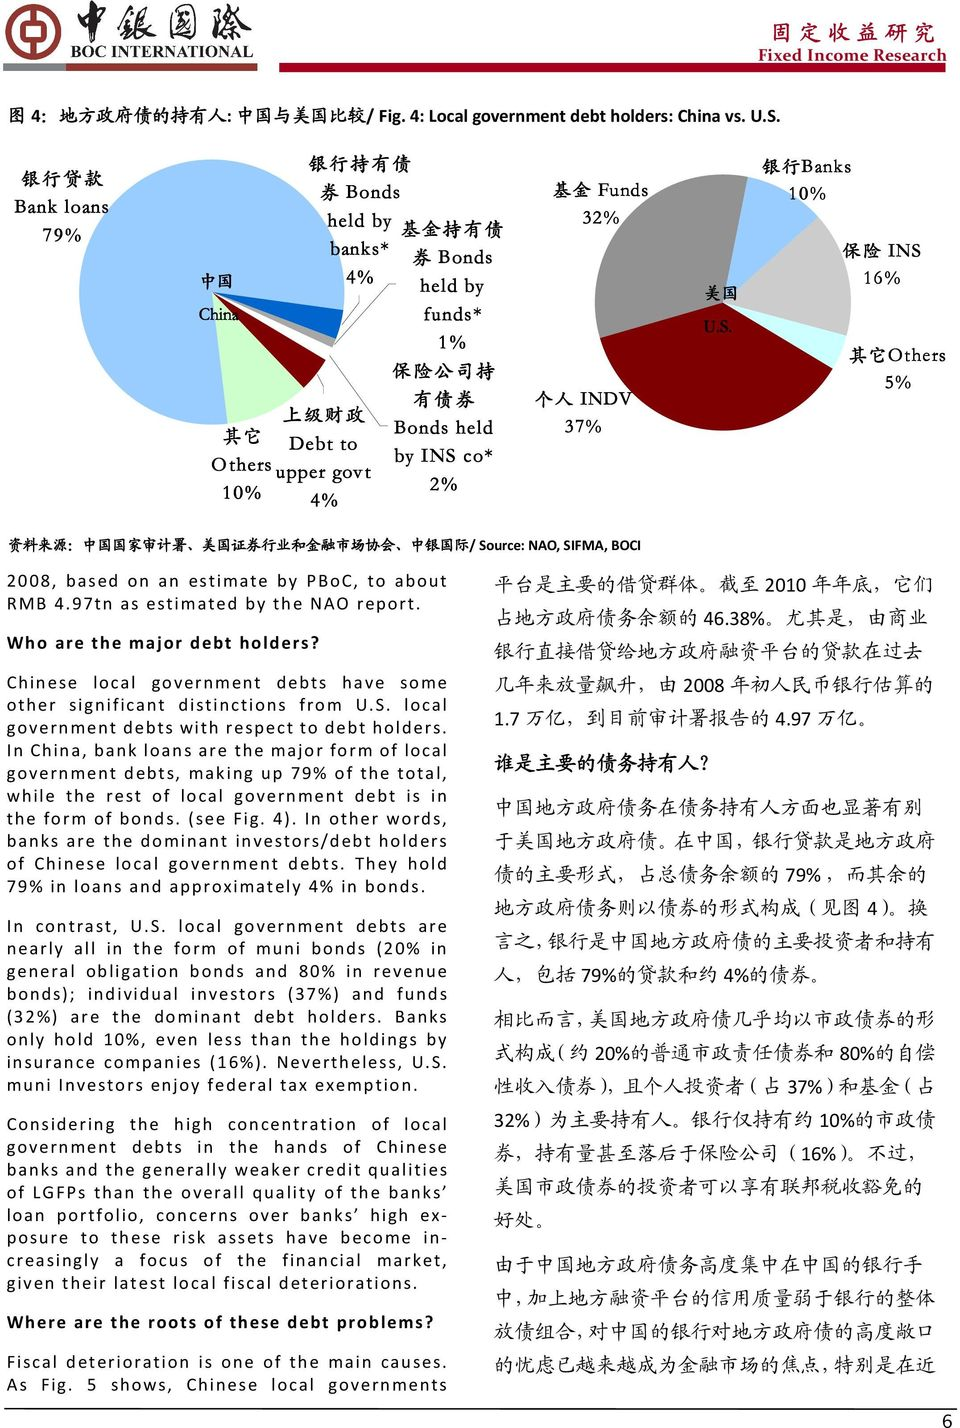 co* upper govt 10% 2% 4% 持 unds 32% 费 金 邦 入 37% 企. 能. B 转 nks 10% 费 金 能 16% 可 thers 5% / Source: NAO, SIFMA, BOCI 2008, based on an estimate by PBoC, to about RMB 4.